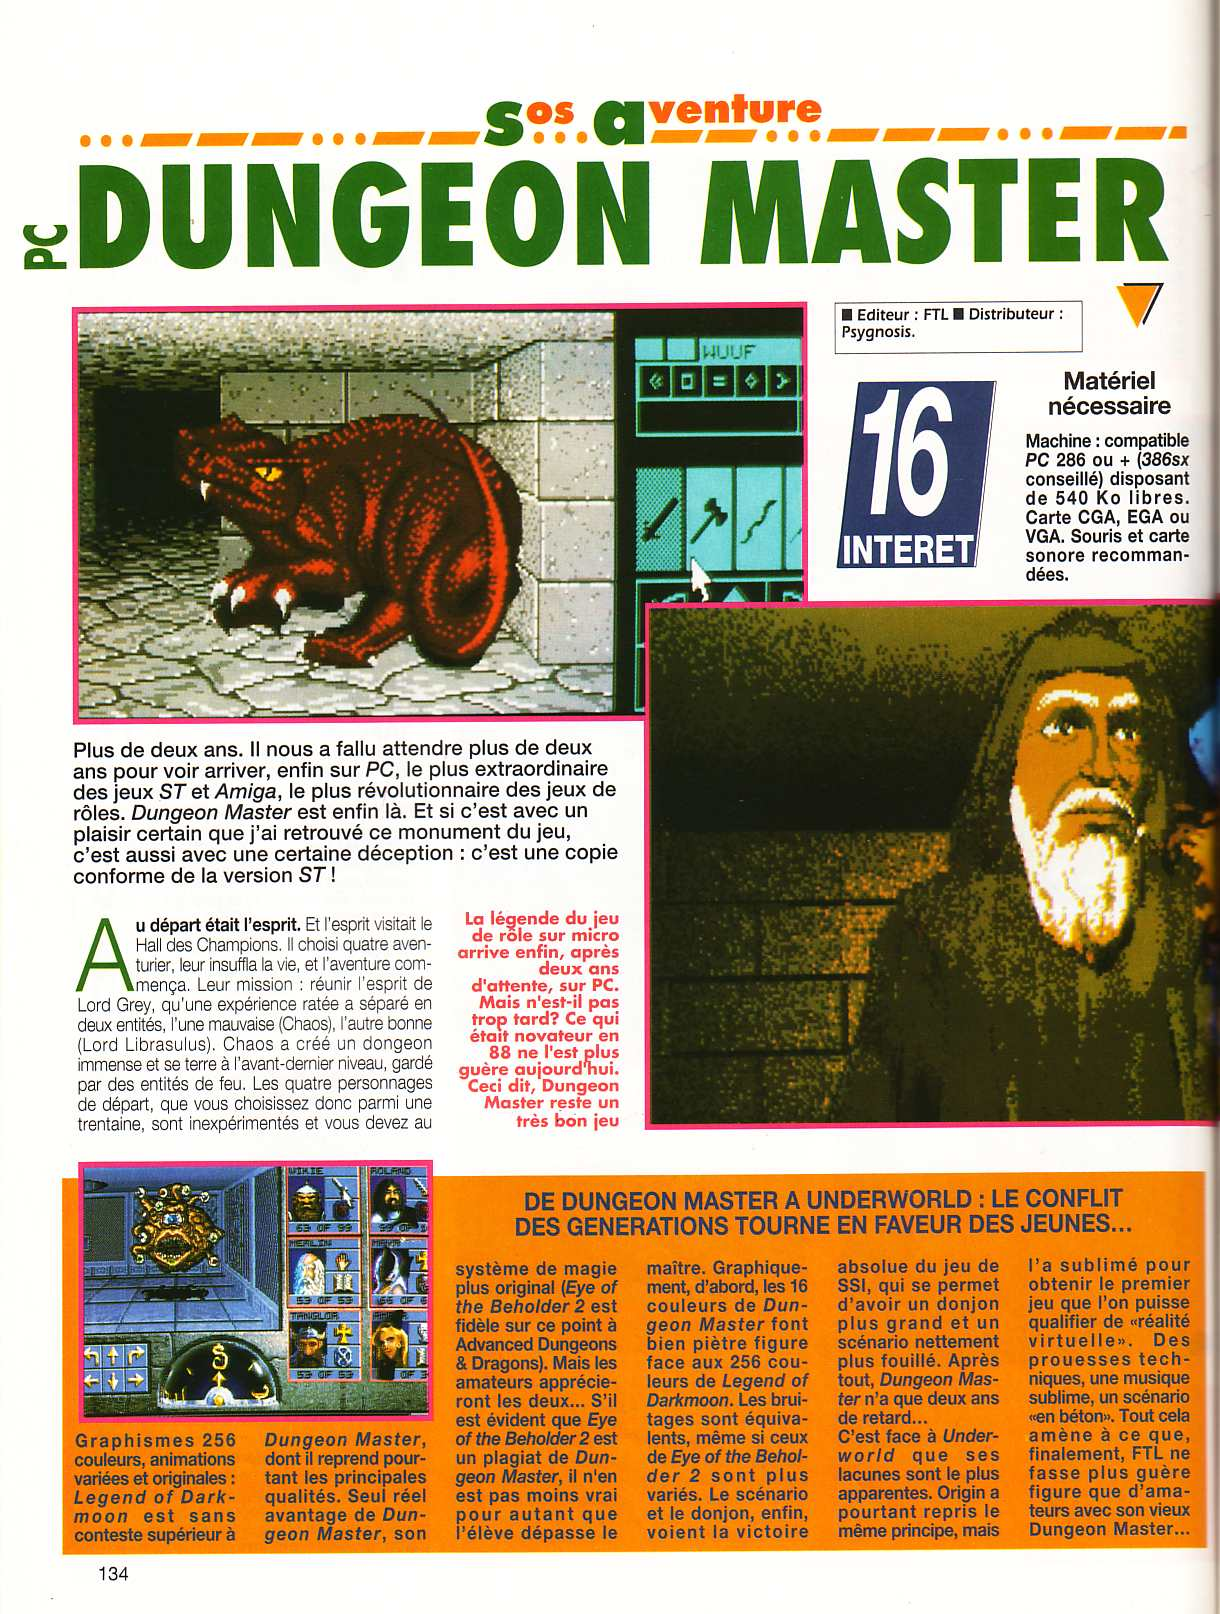 Dungeon Master for PC Review published in French magazine 'Tilt', Issue #106, October 1992, Page 134